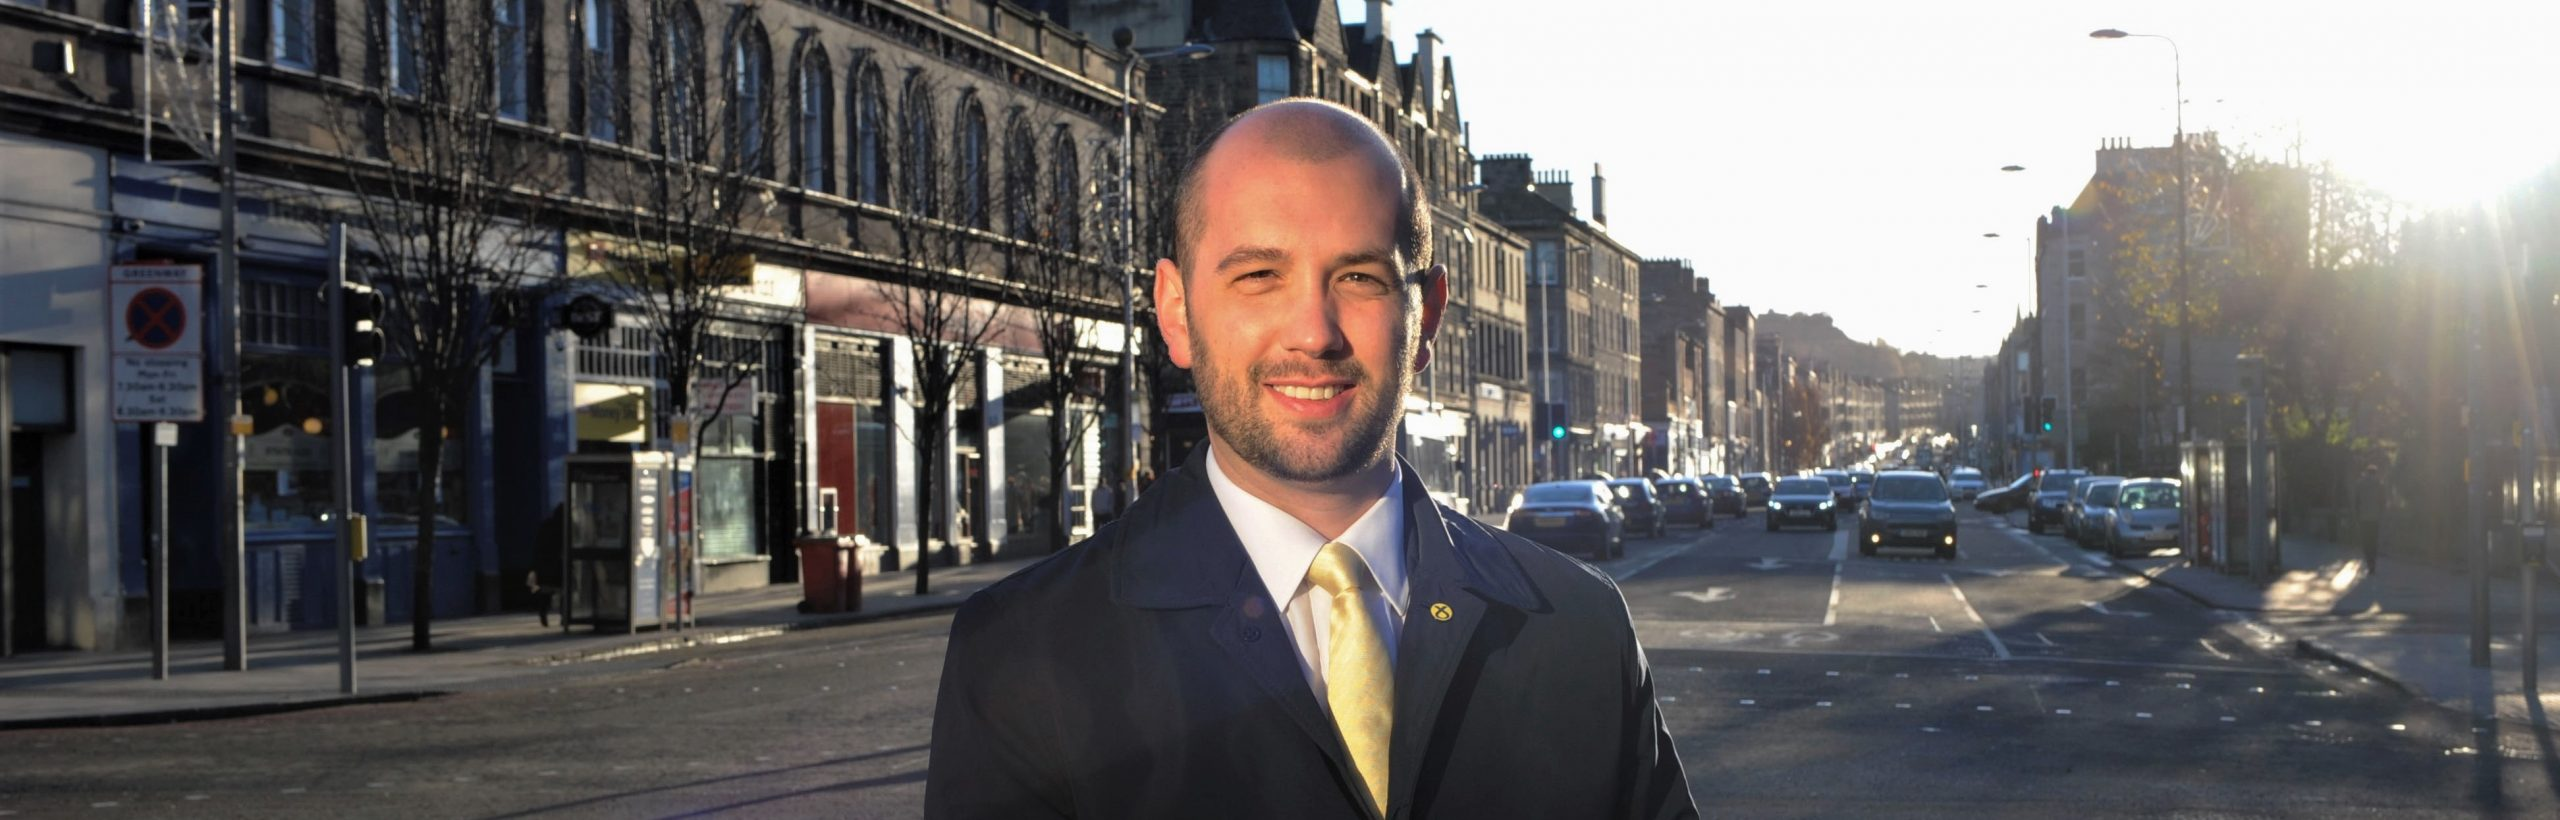 Ben Macpherson at the foot of Leith Walk